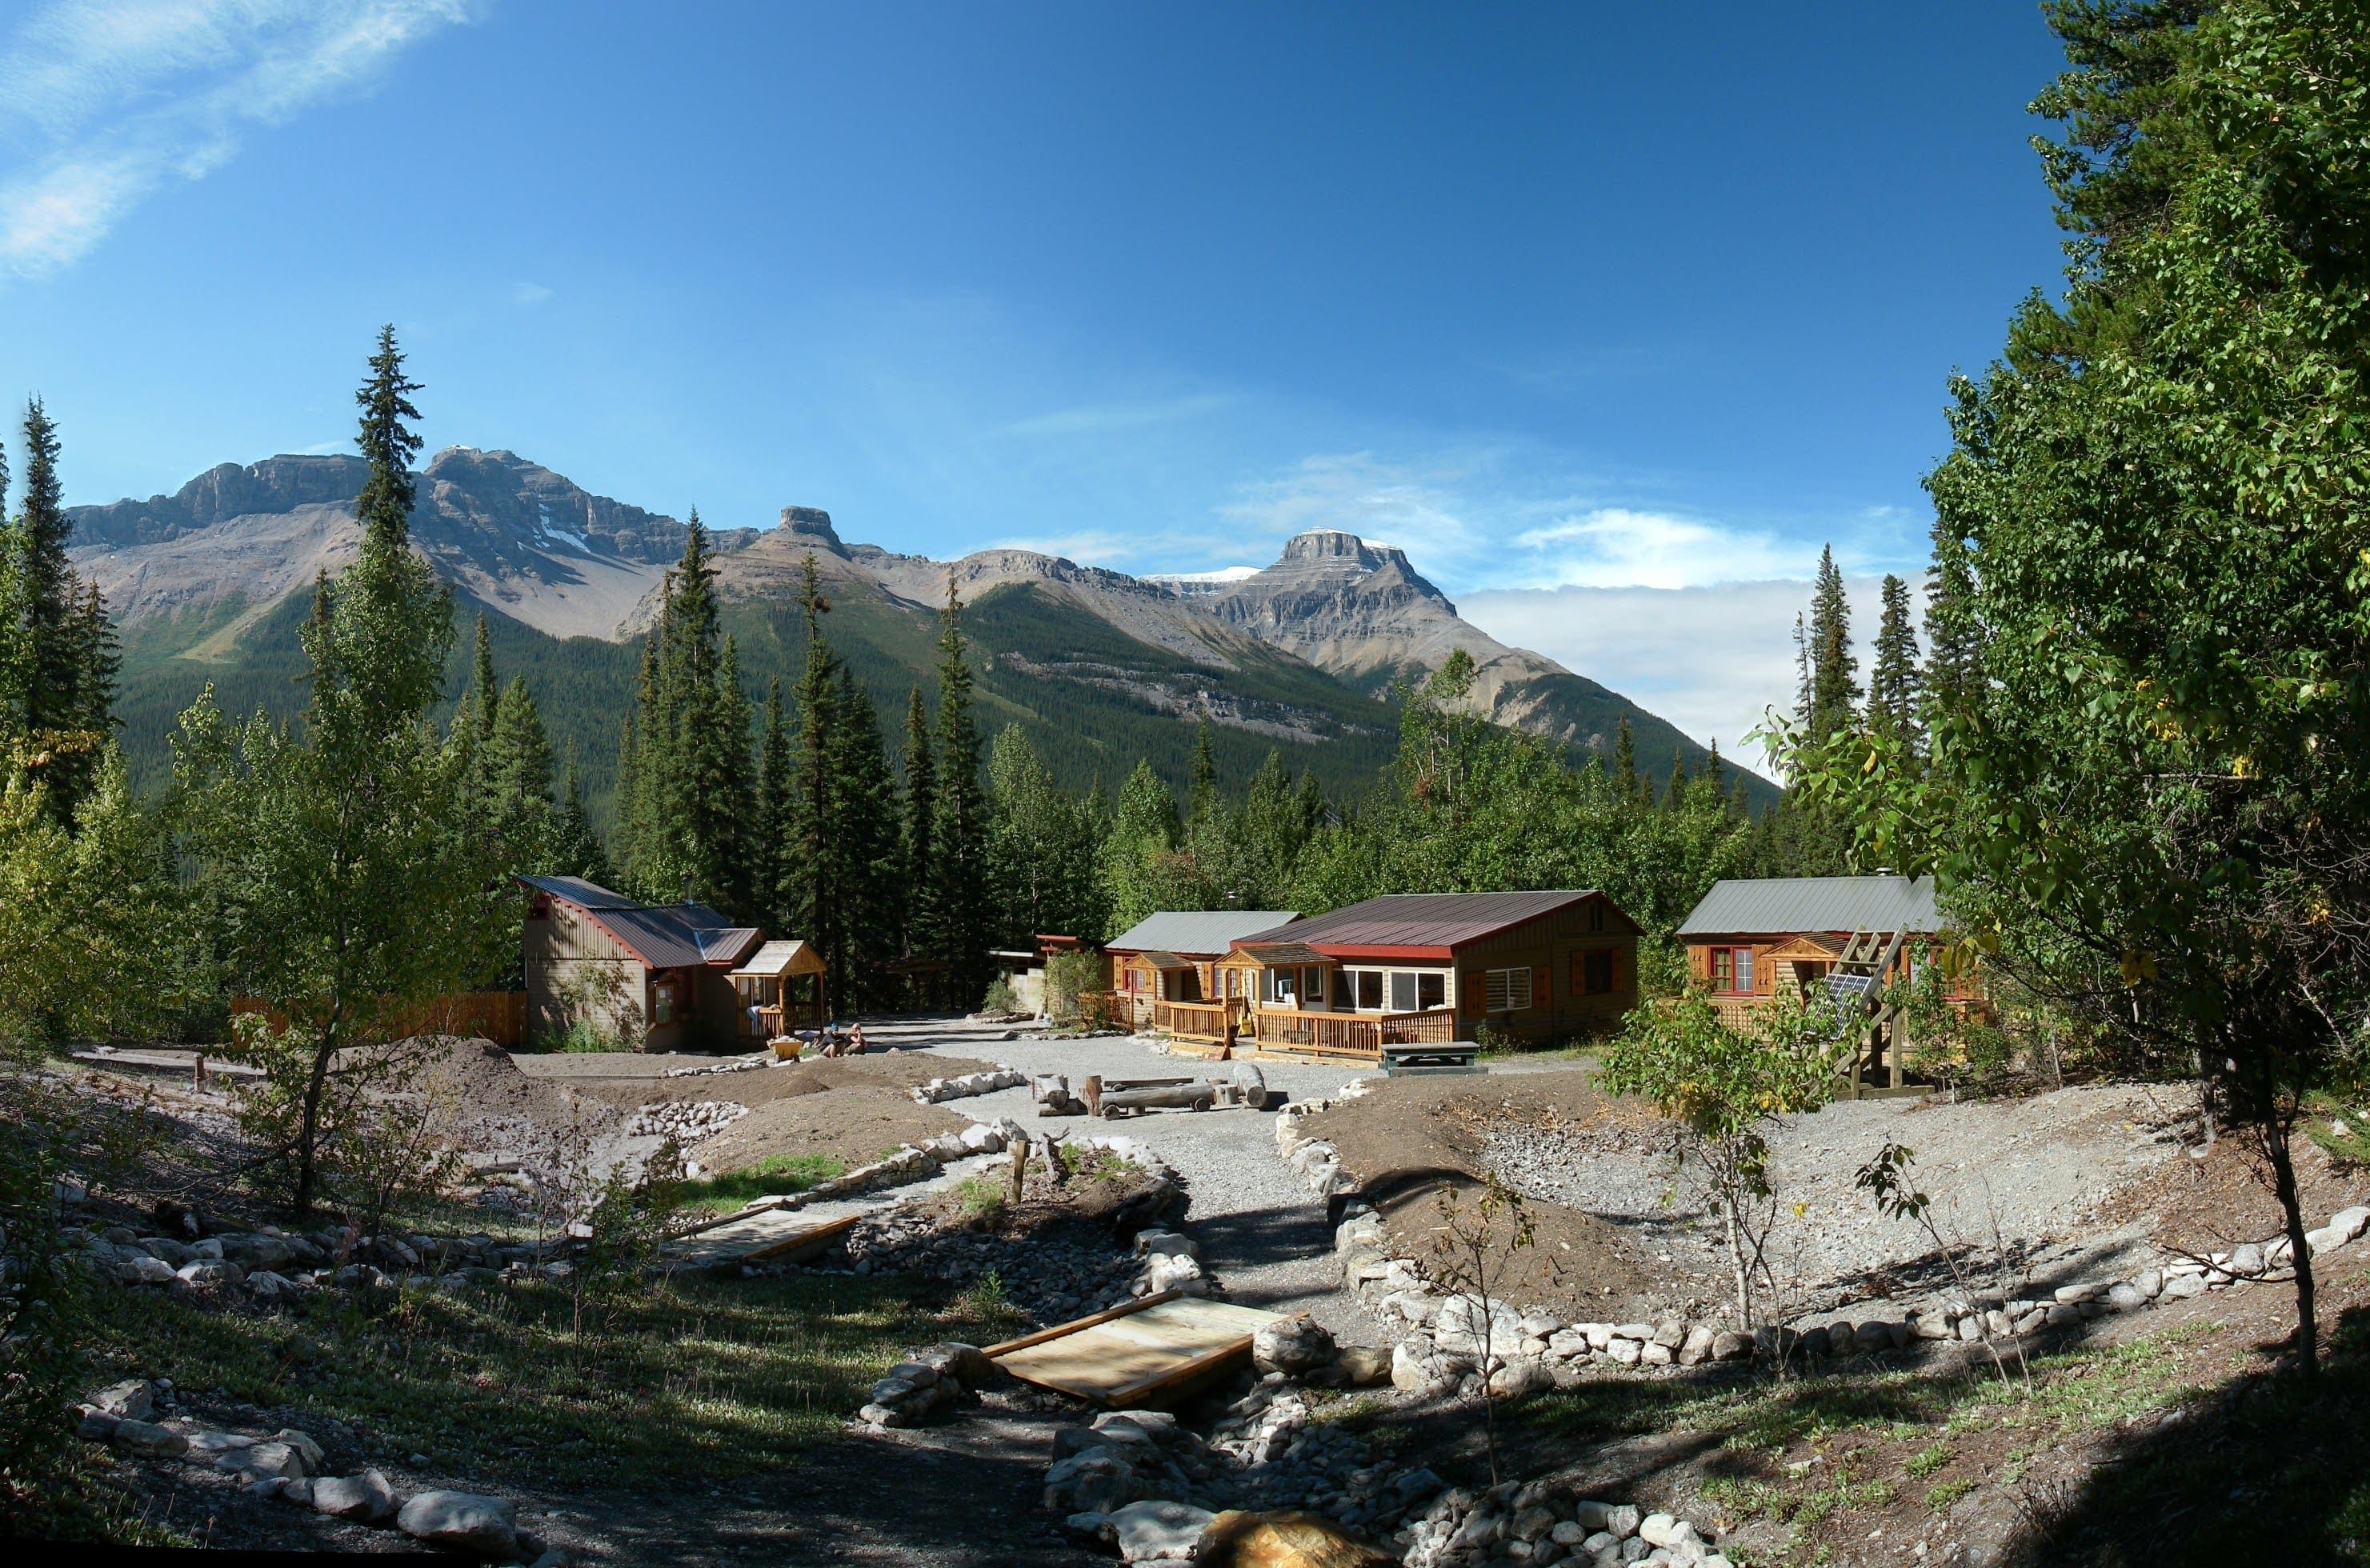 Hostel Banff HI - Rampart Creek Wilderness Hostel